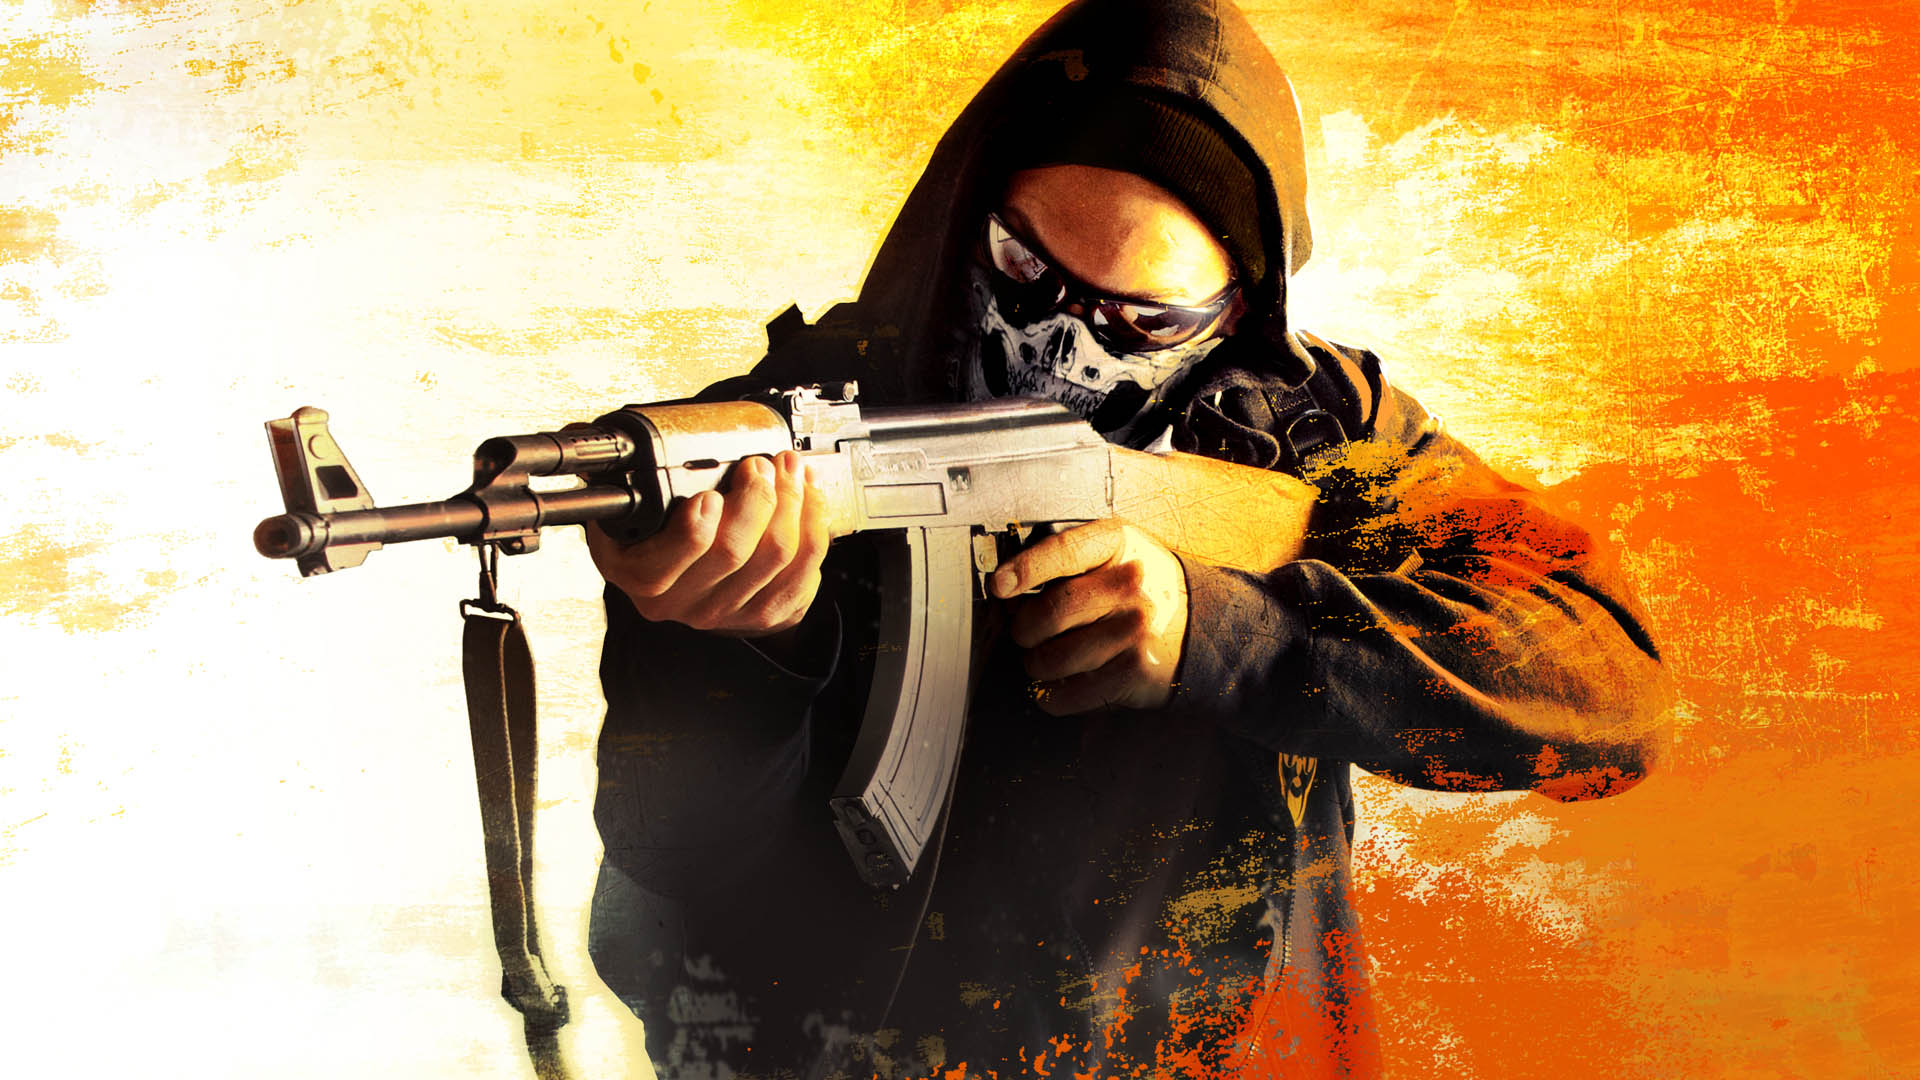 Counter-Strike: Global Offensive for mobile